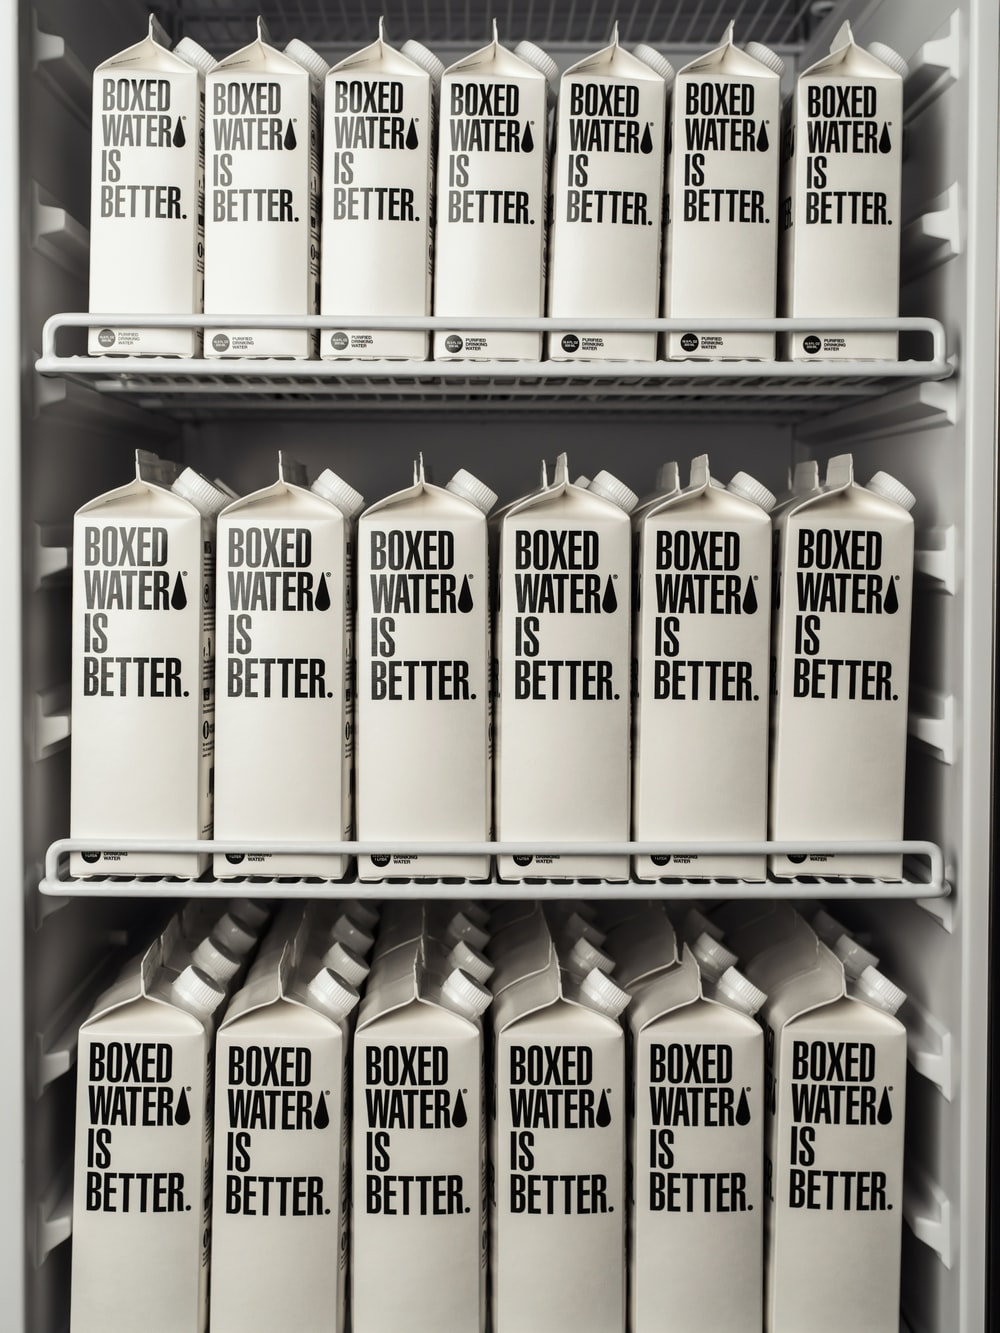 A water refrigerator full of Boxed Water cartons